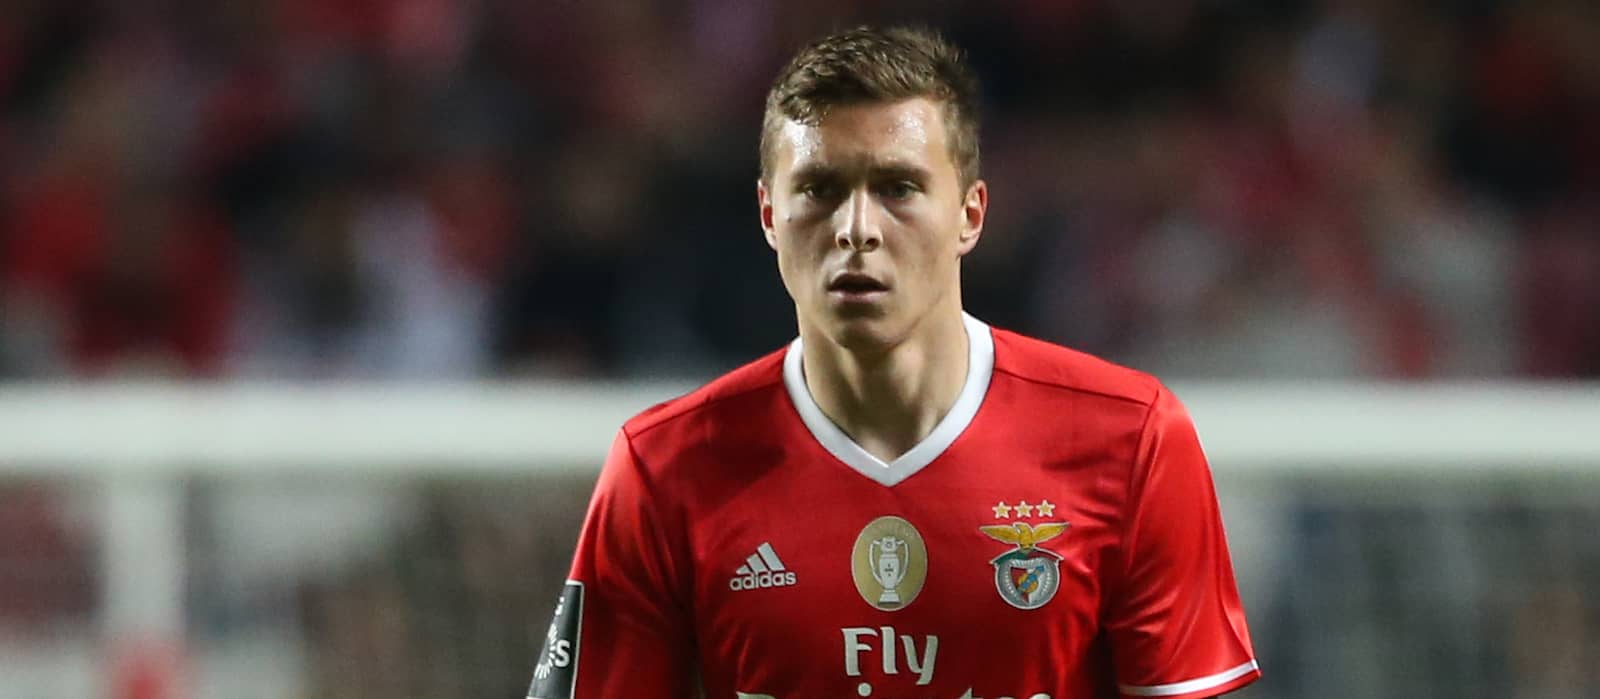 Benfica reach an agreement with Vasteras for Victor Lindelof to join Manchester United